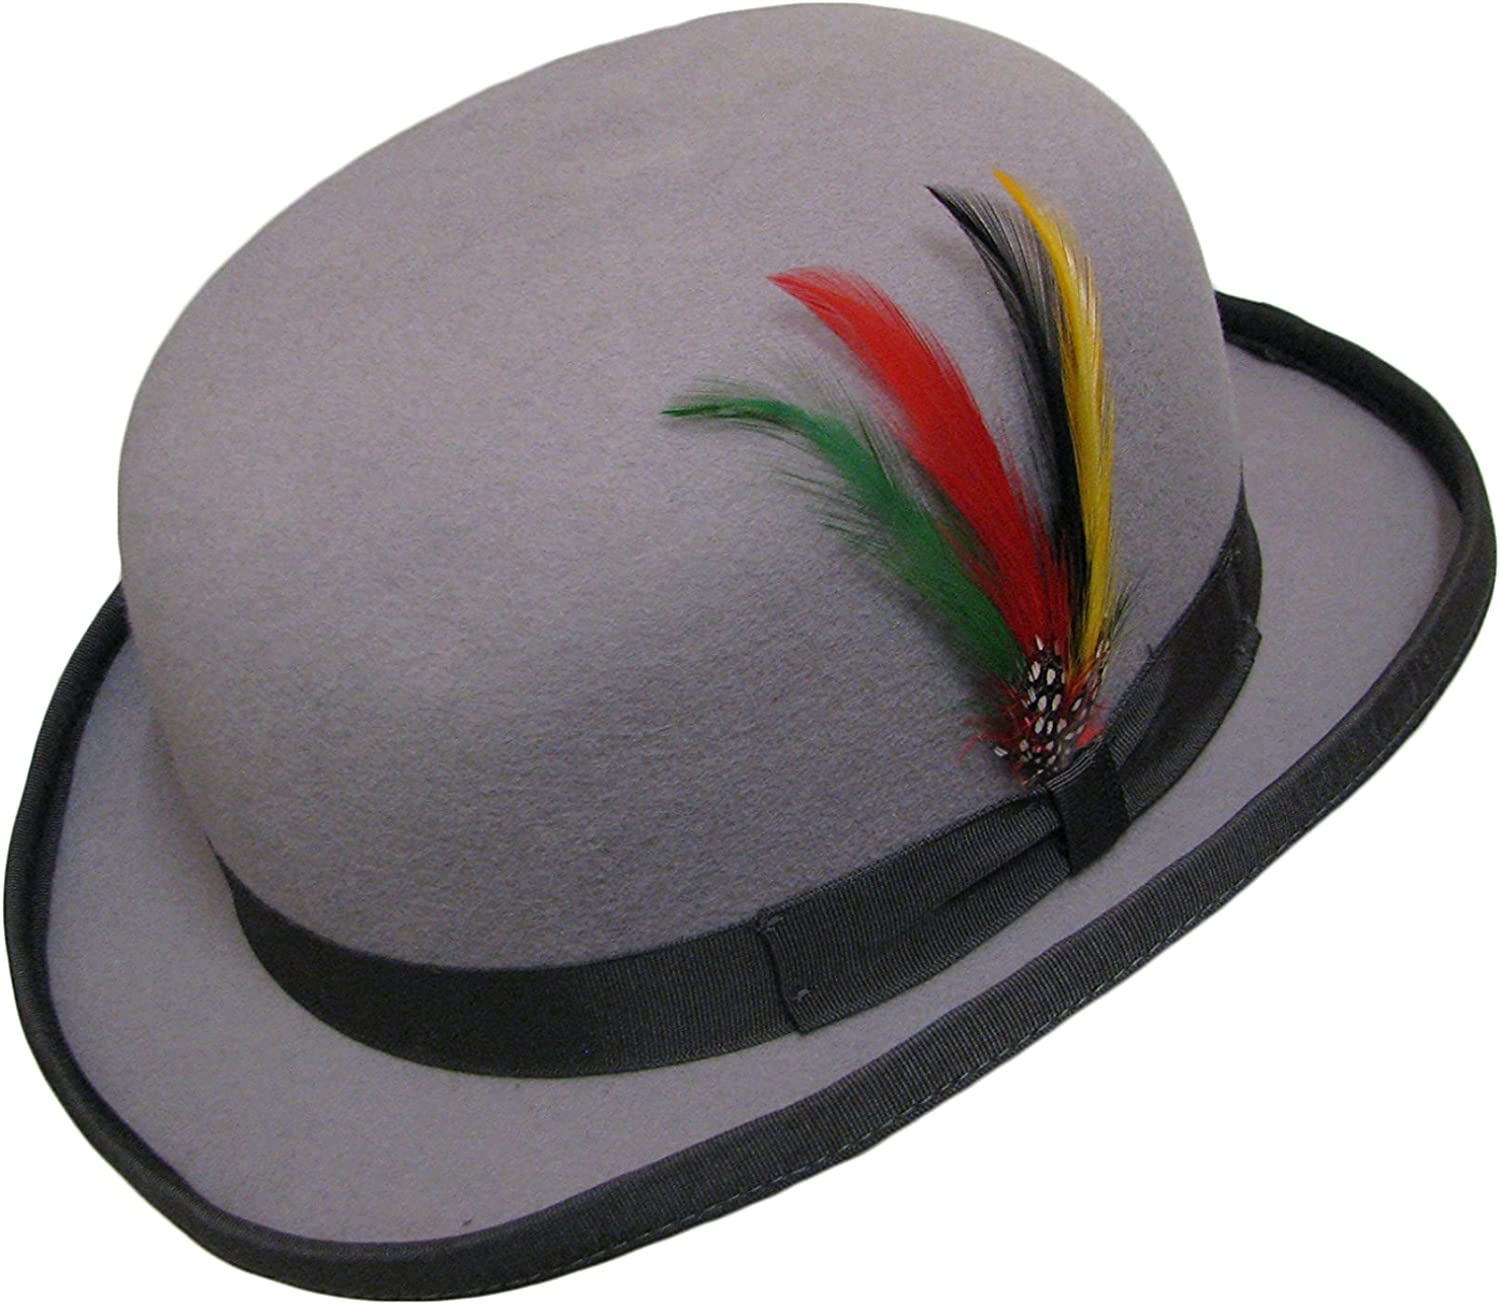 Grey 100/% Wool Bowler Hat High Quality with Removable Feather Satin Lined